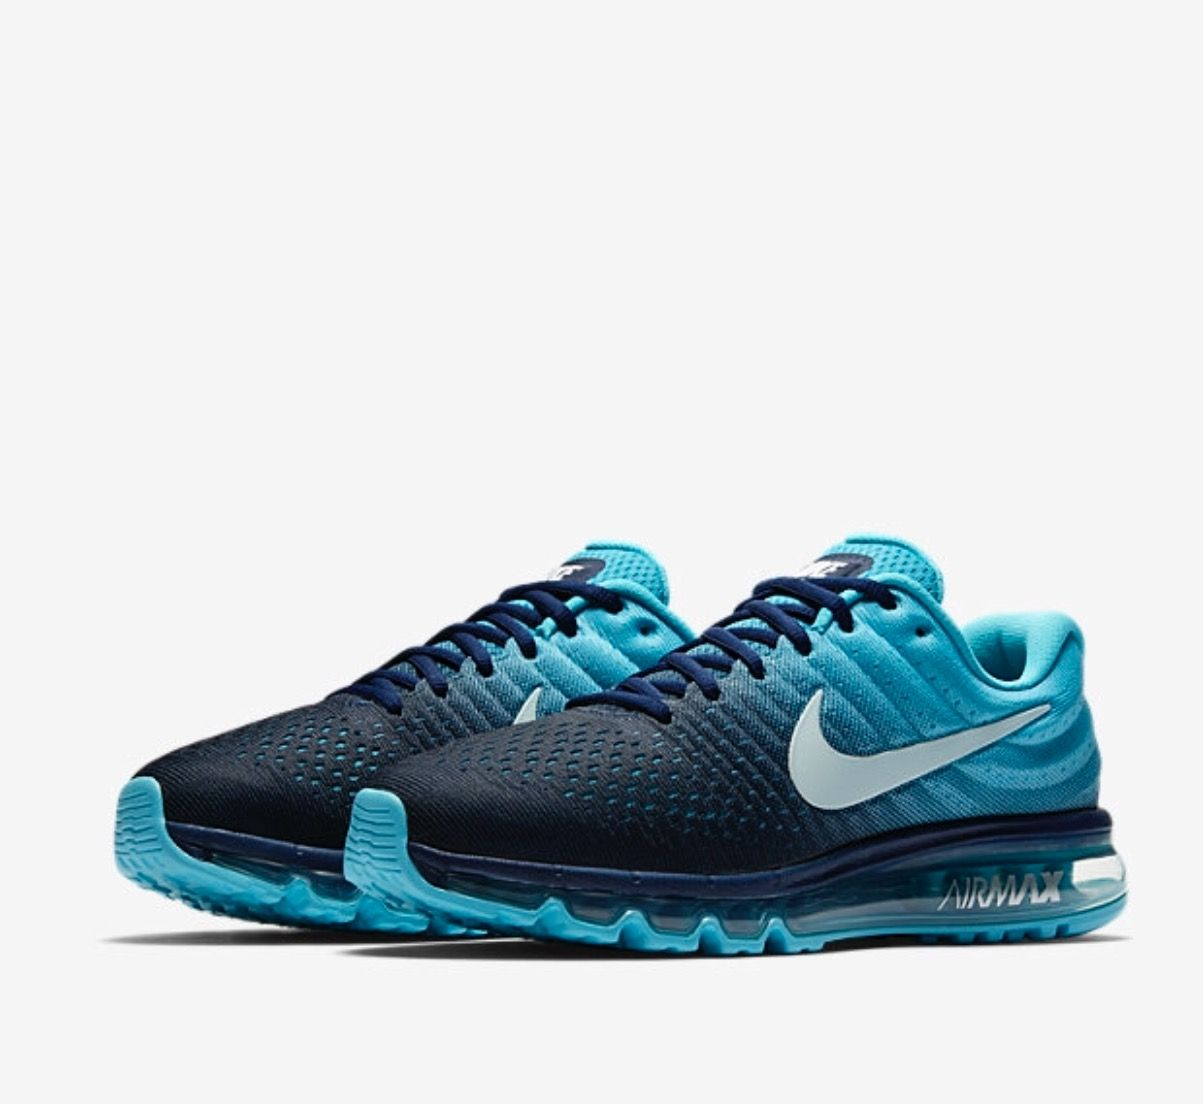 Nike Air Max 2017. The most beautiful Air Max I've ever seen